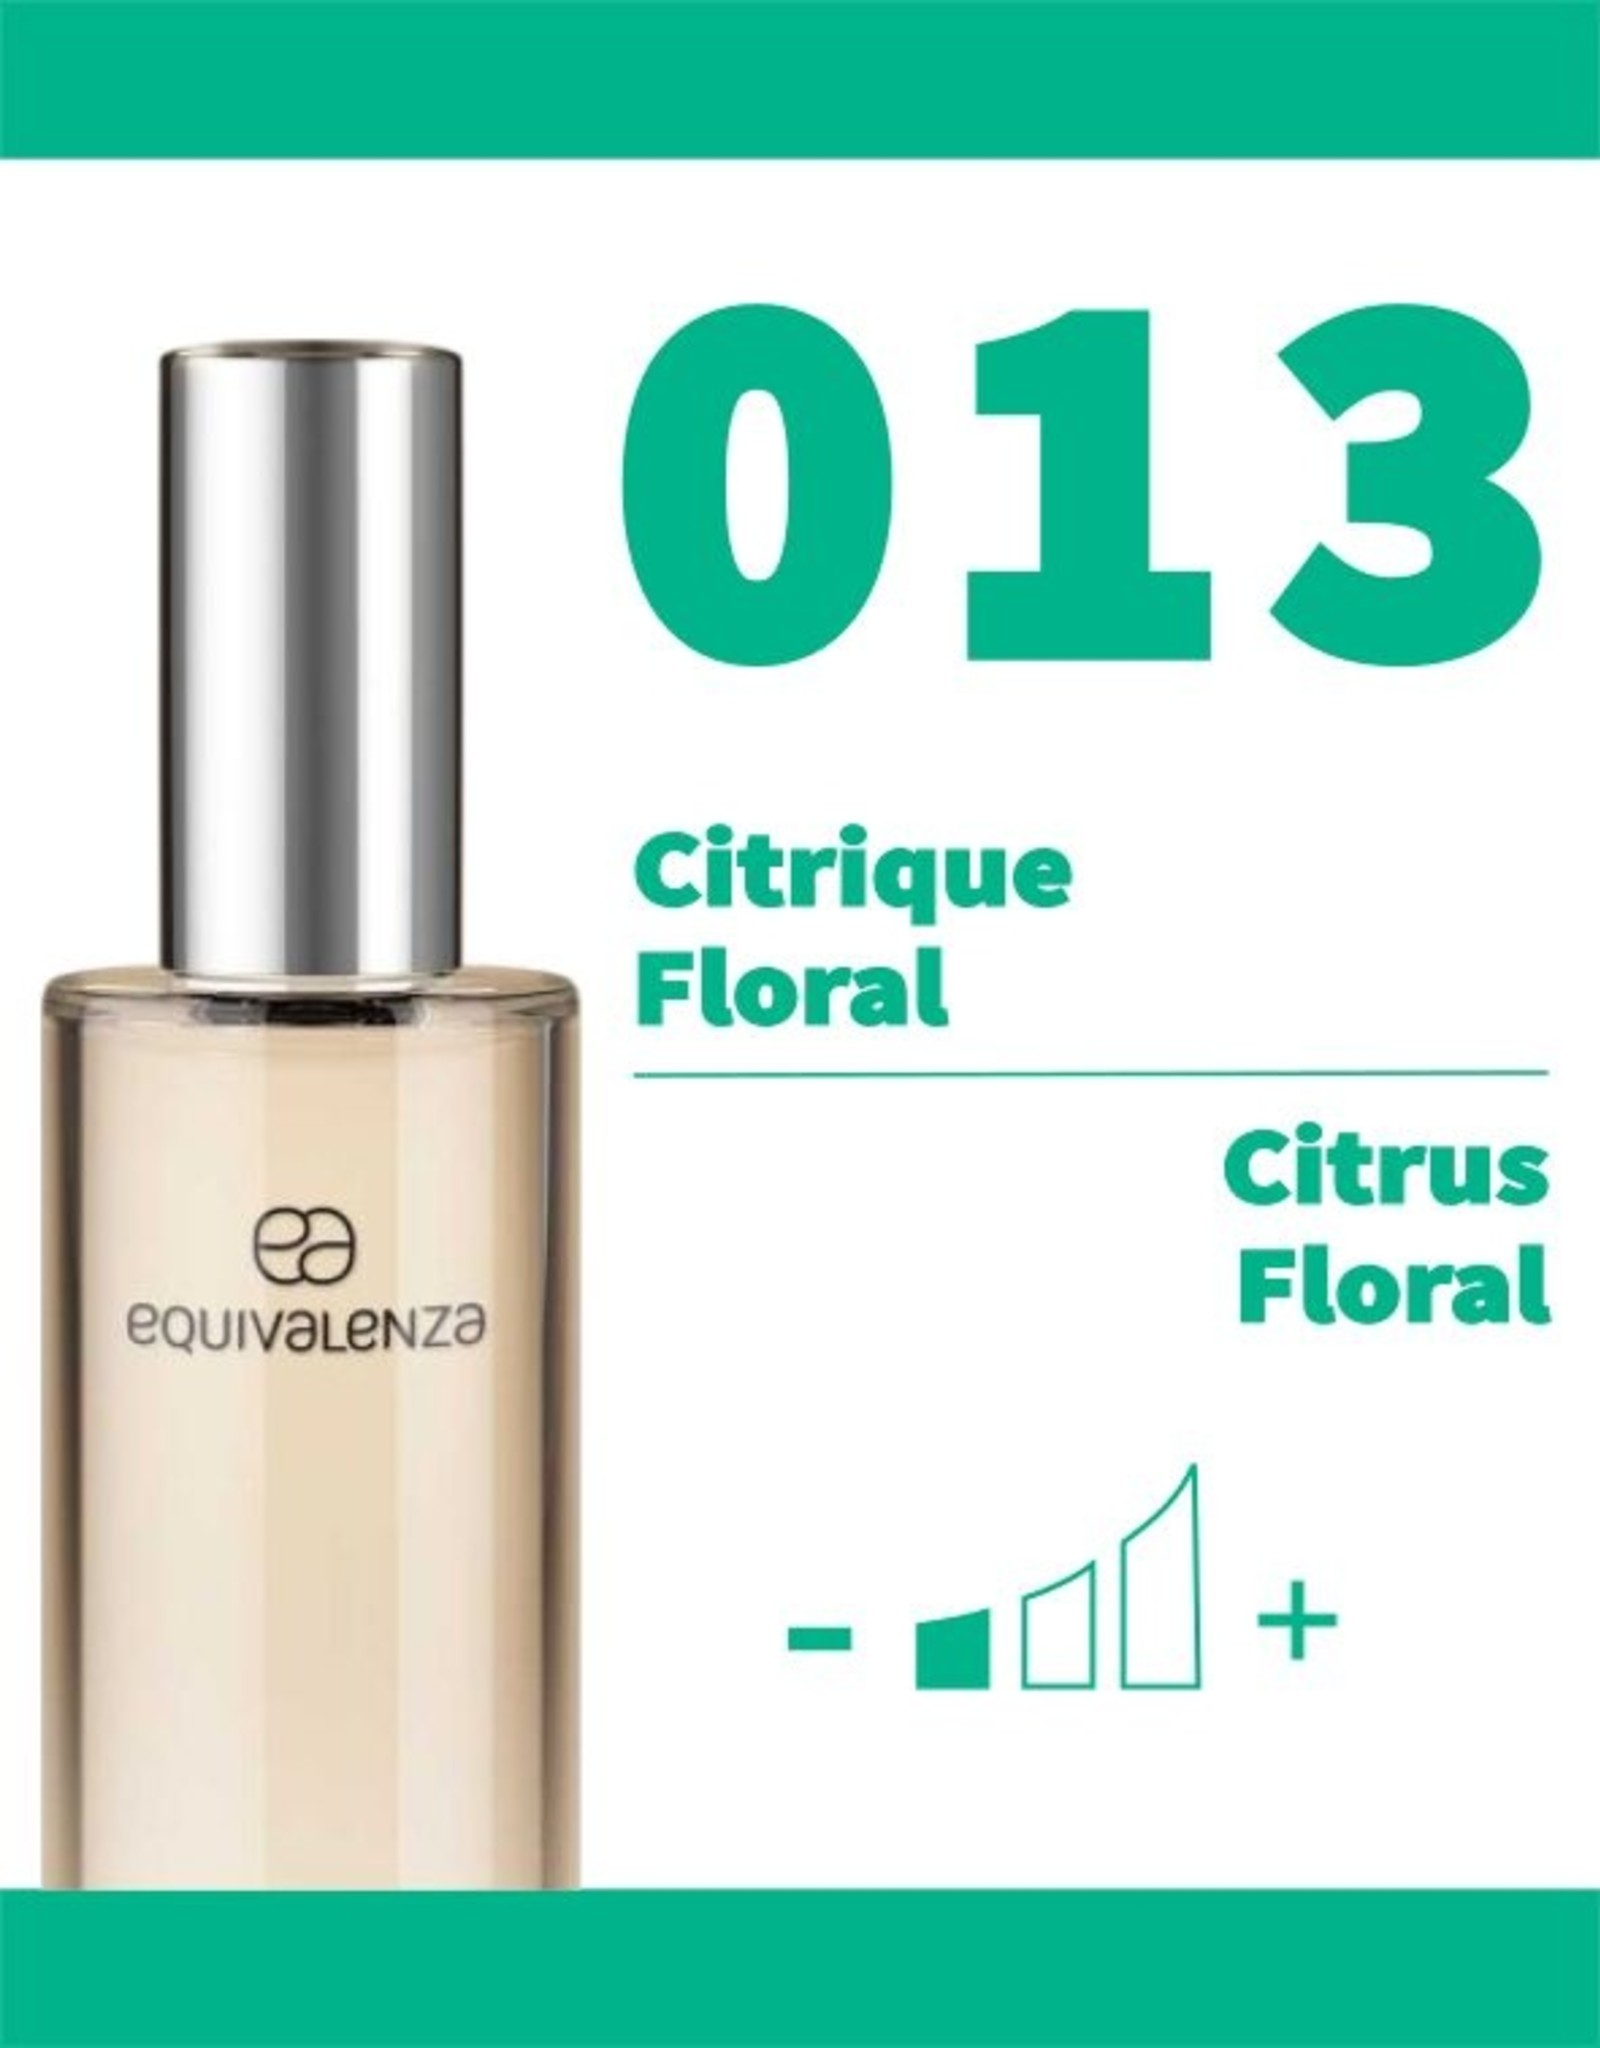 Equivalenza Citrique Floral 013